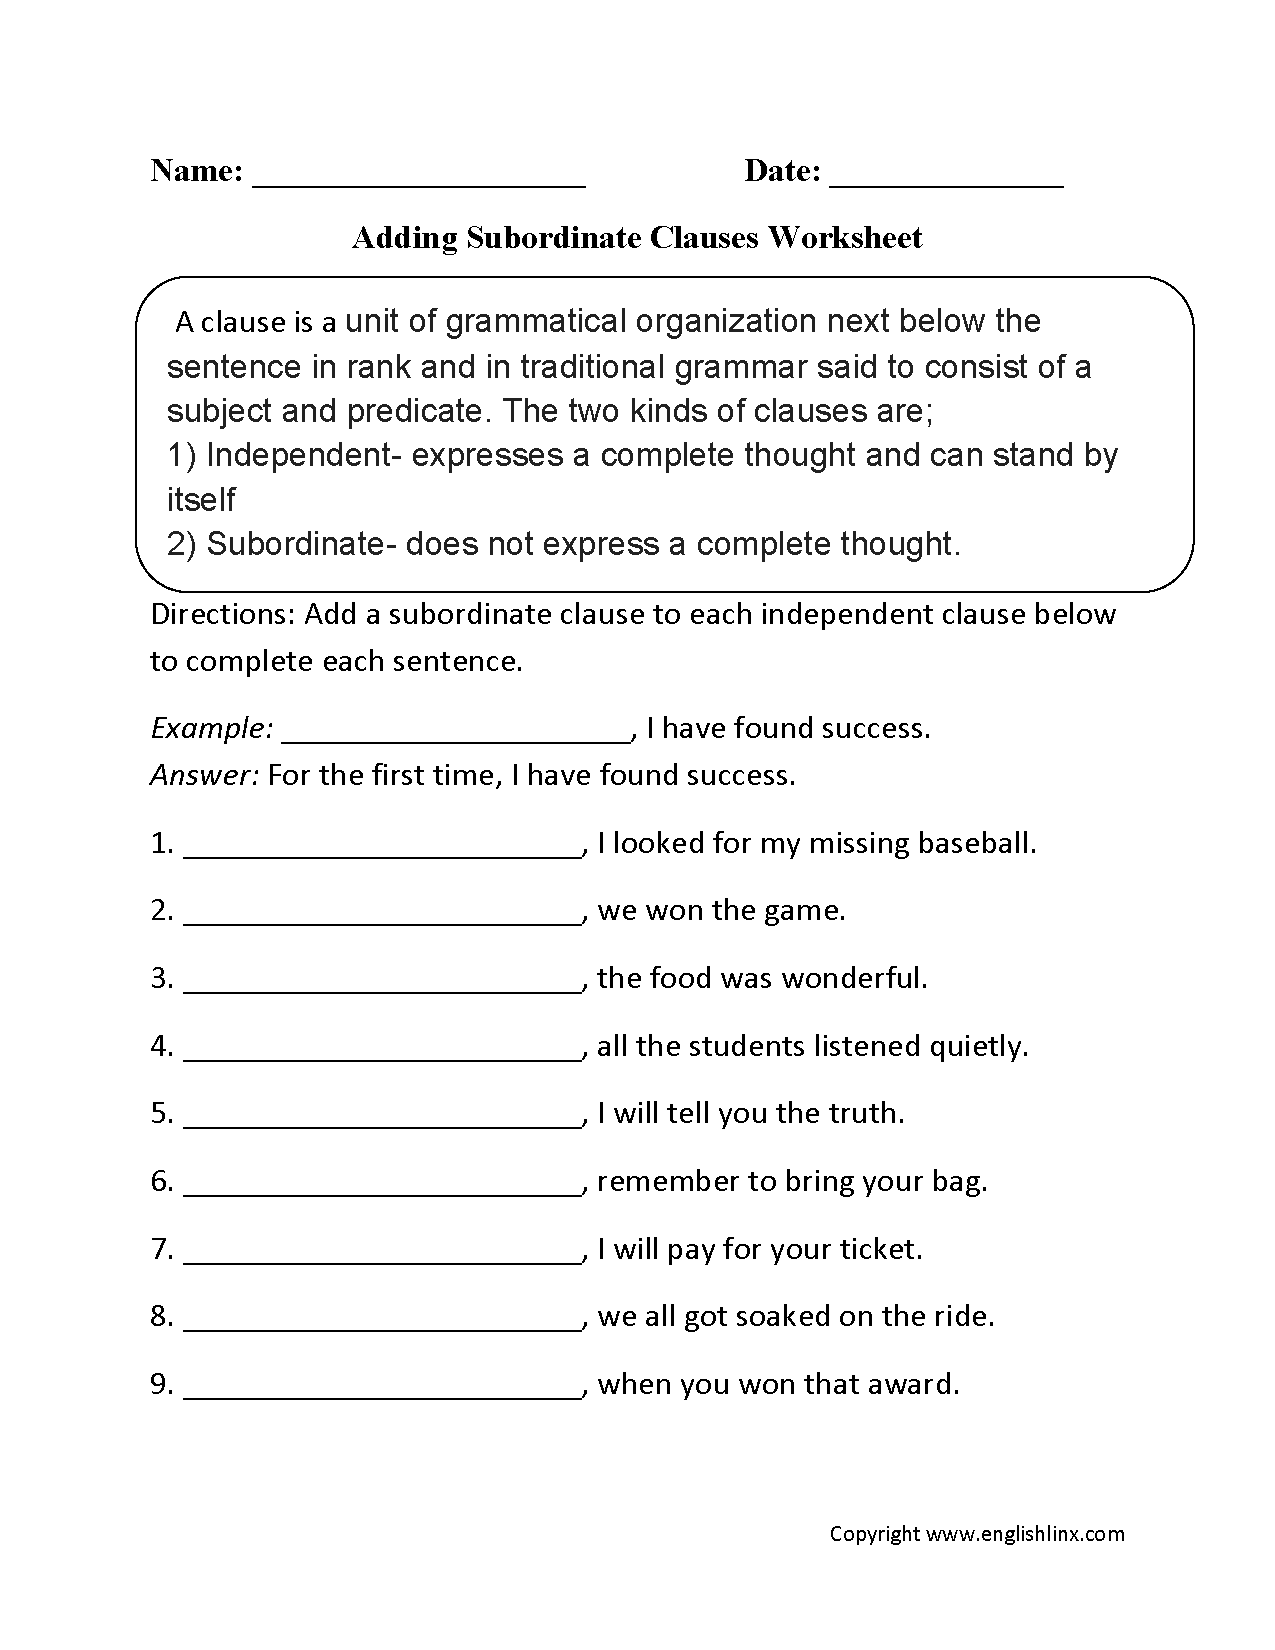 worksheet Comma Usage Worksheet adding subordinate clauses worksheet englishlinx com board these clause worksheets are great for working with use the beginner intermediate or advanced lev